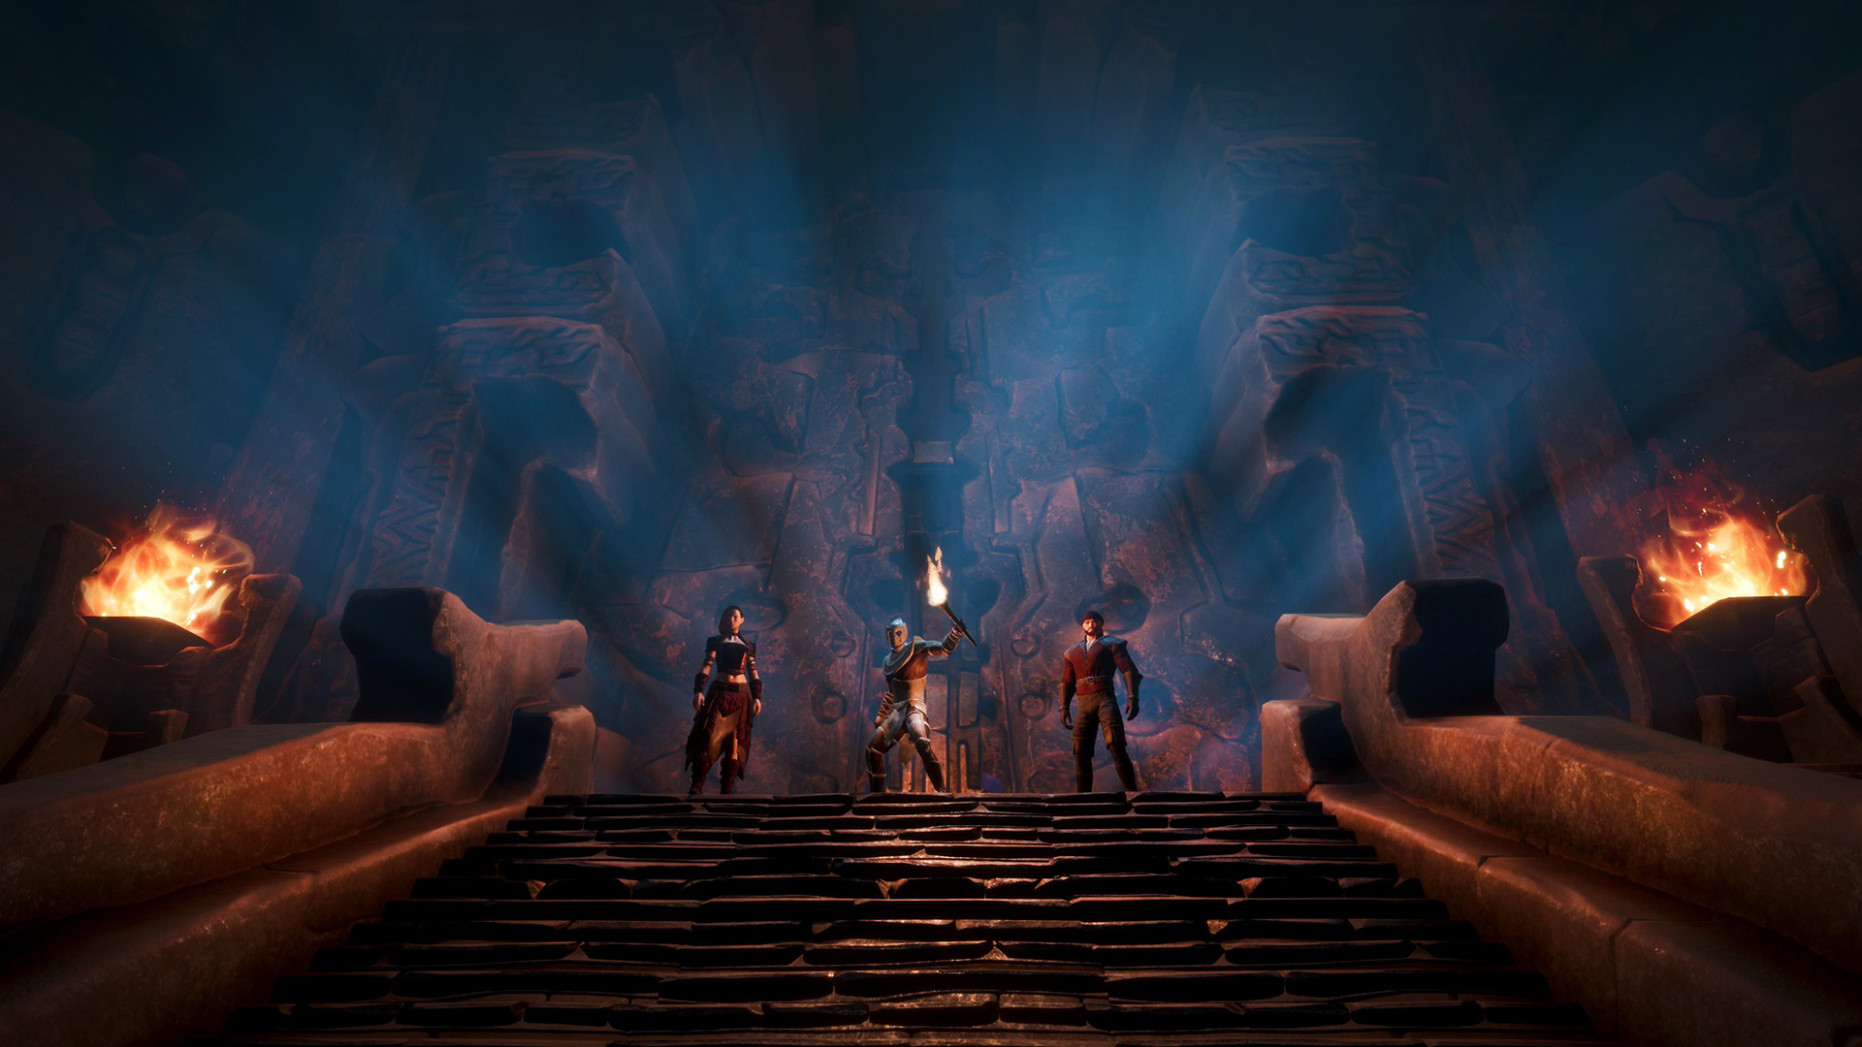 Conan Exiles update for June 11, 11 · PC Patch (11.11.11 ..